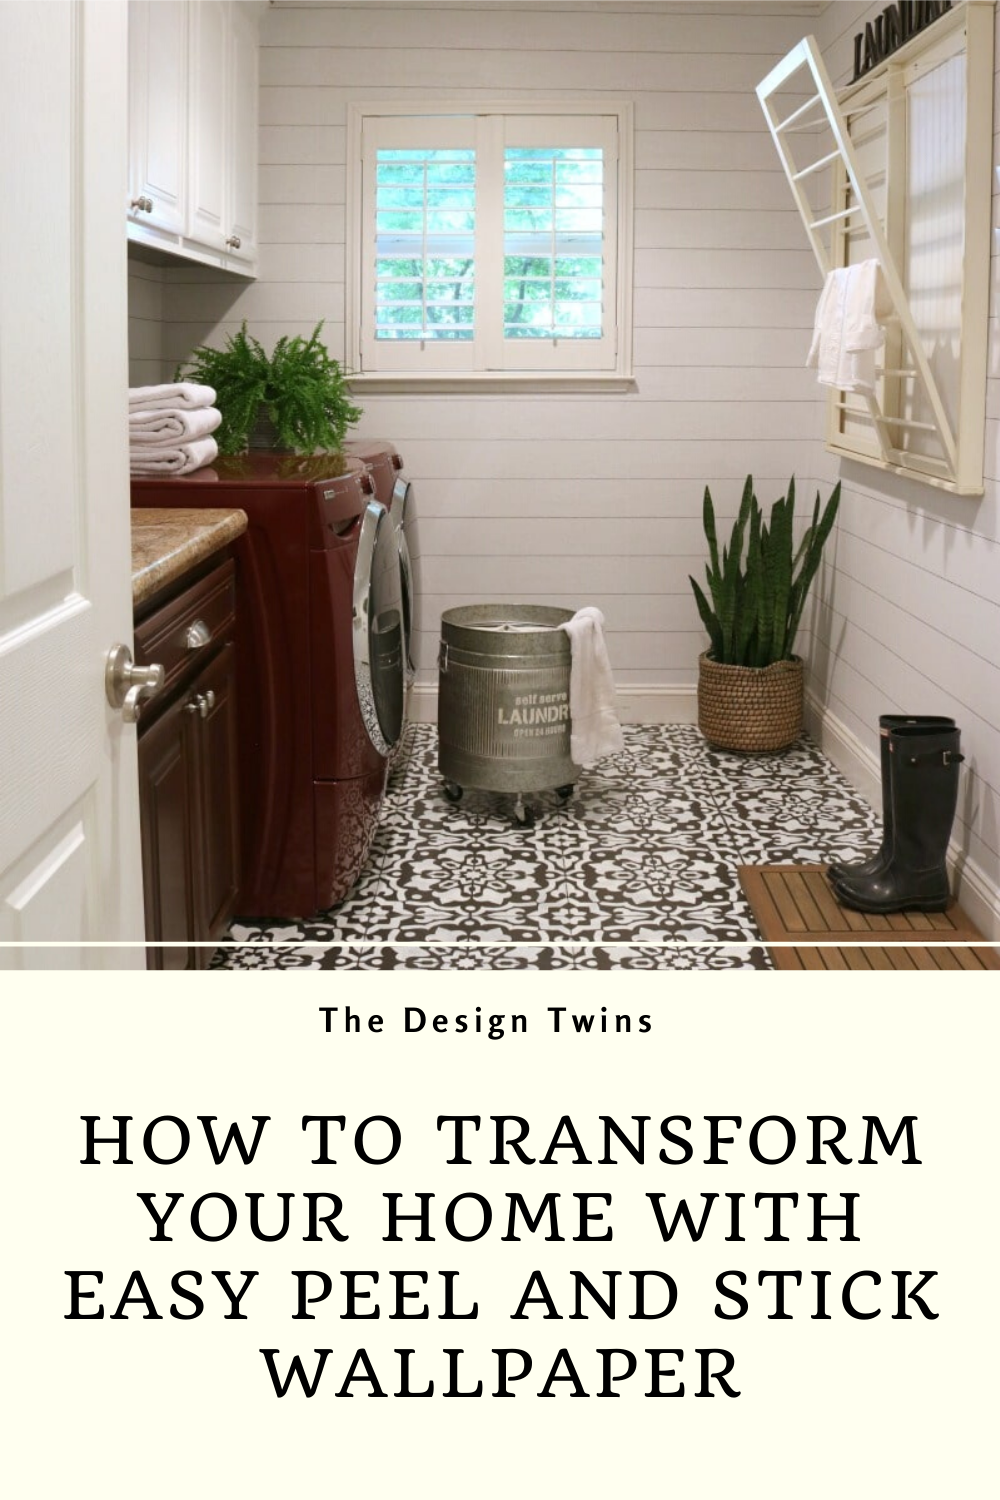 Transform Your Home With Peel And Stick Wallpaper The Design Twins In 2020 Peel And Stick Wallpaper Decorating On A Budget Home Goods Decor